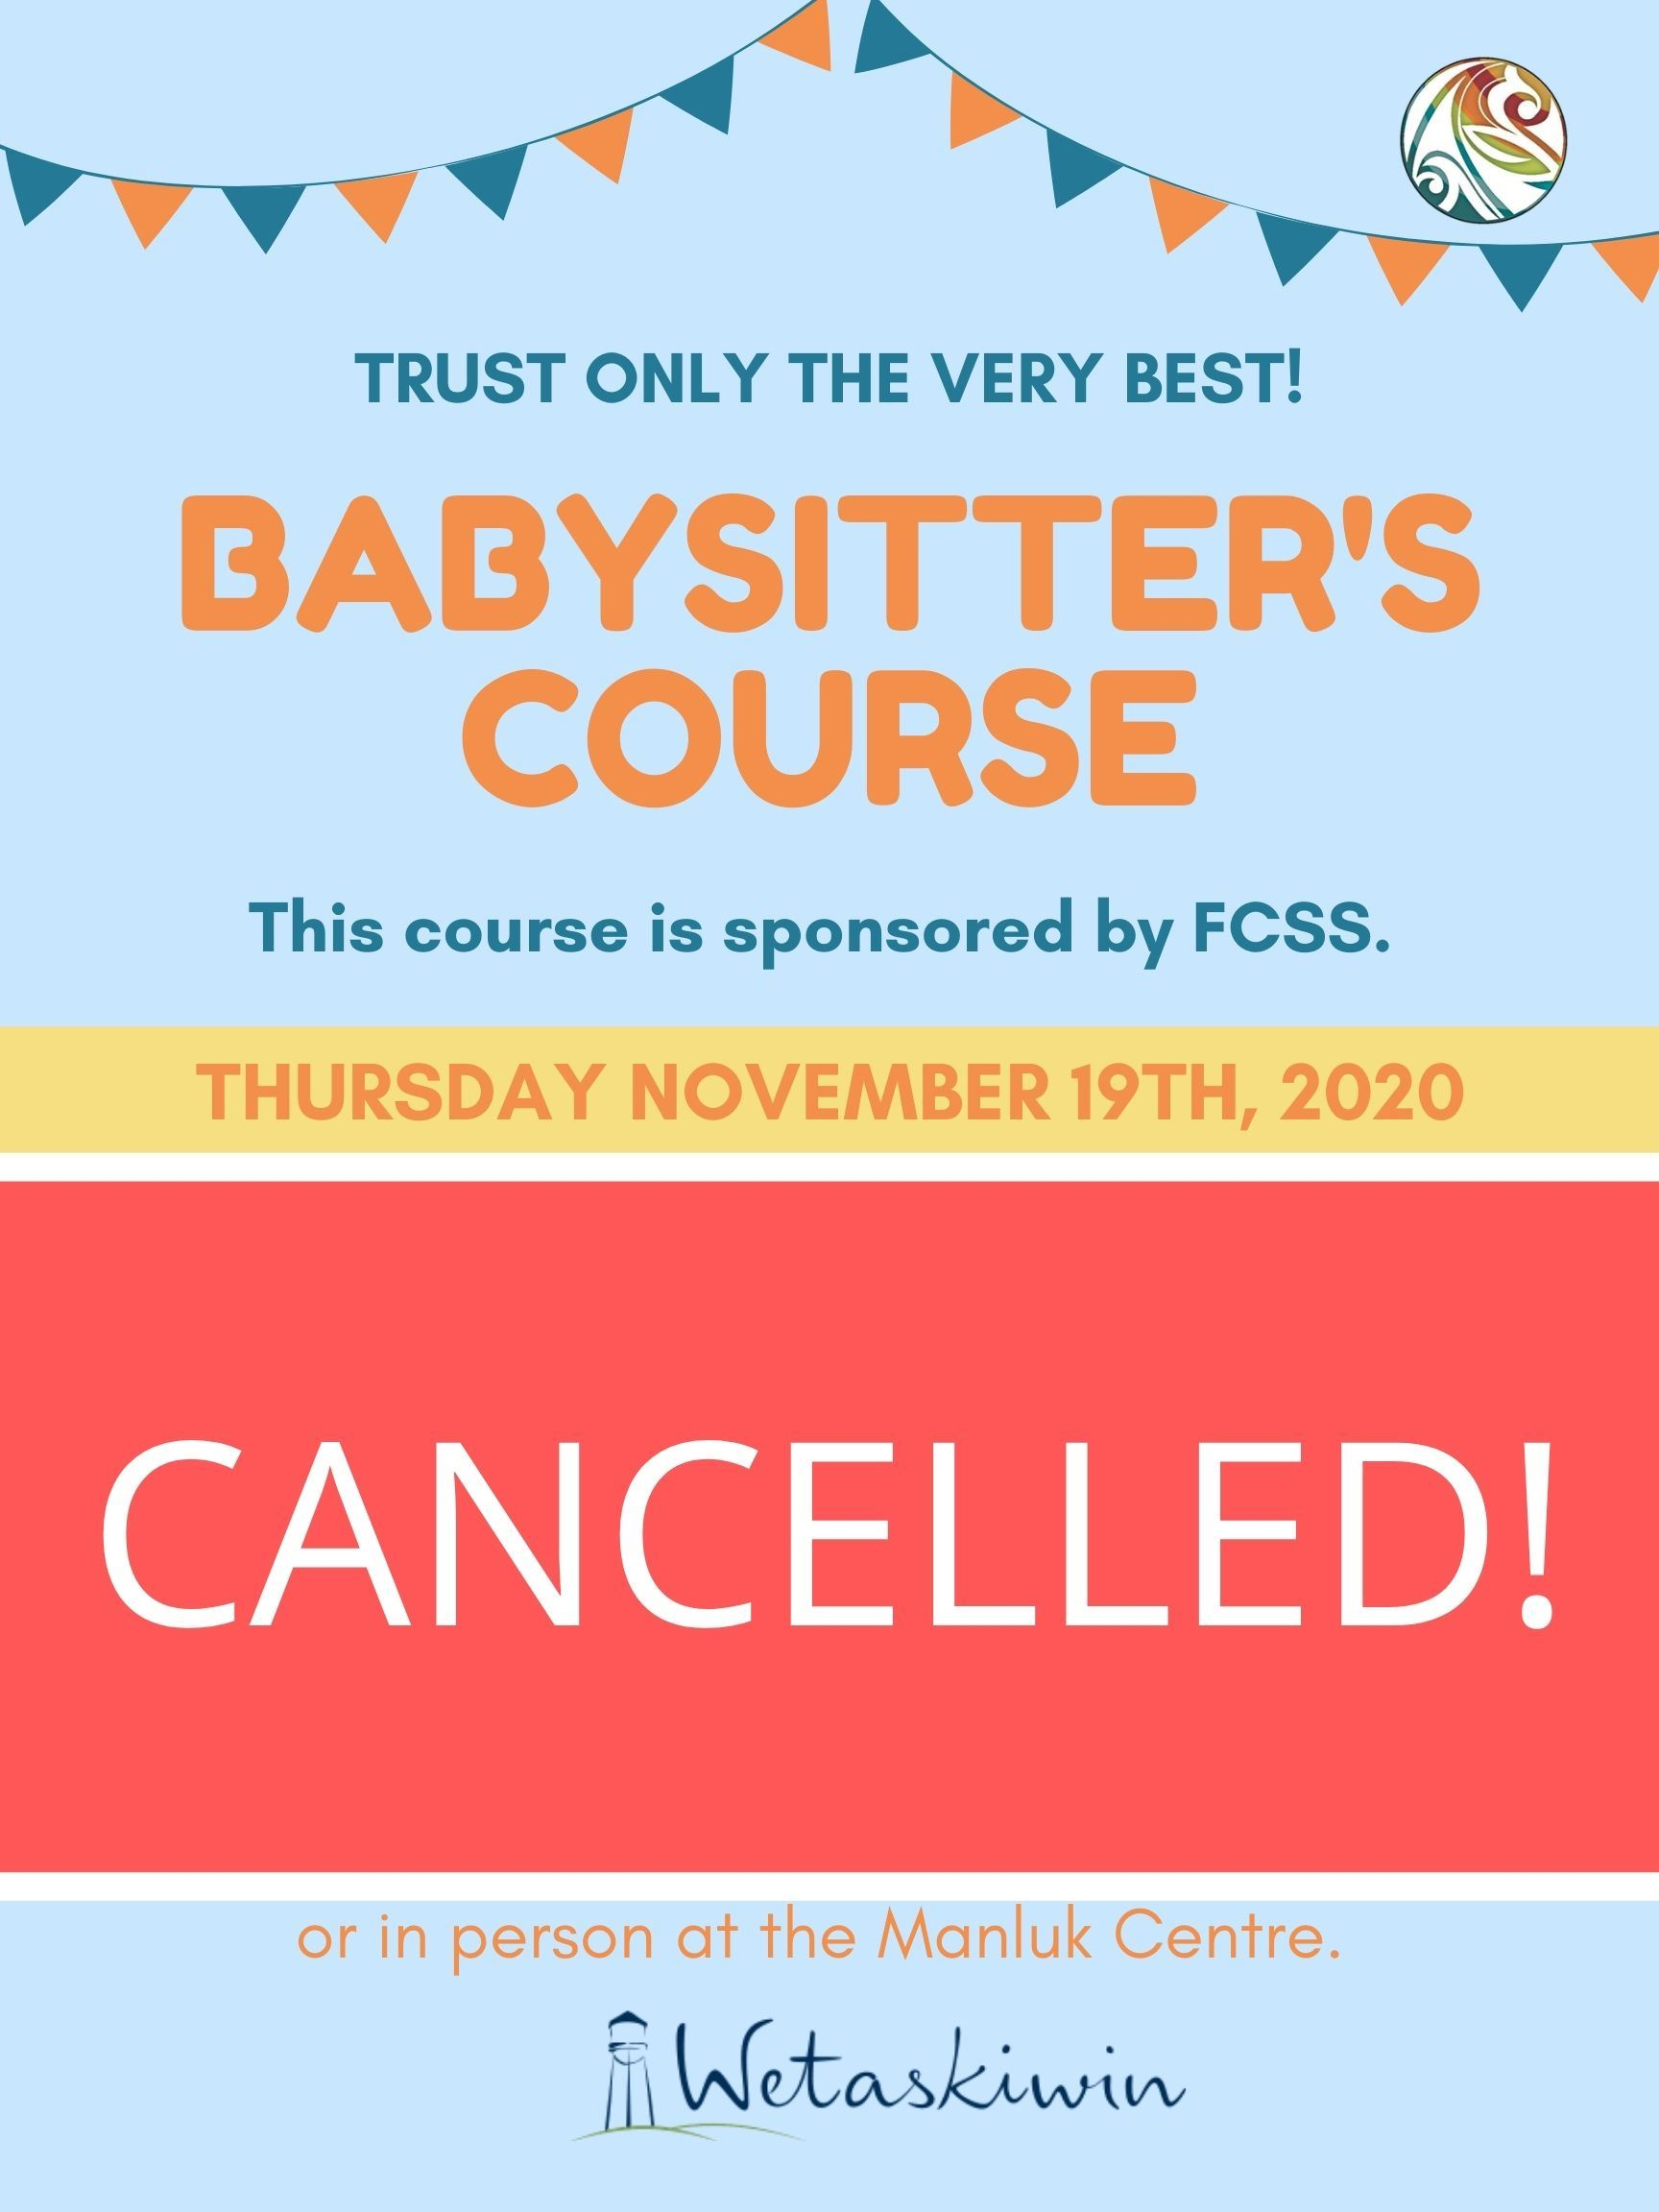 Cancelled Babysitters Course Nov. 19th